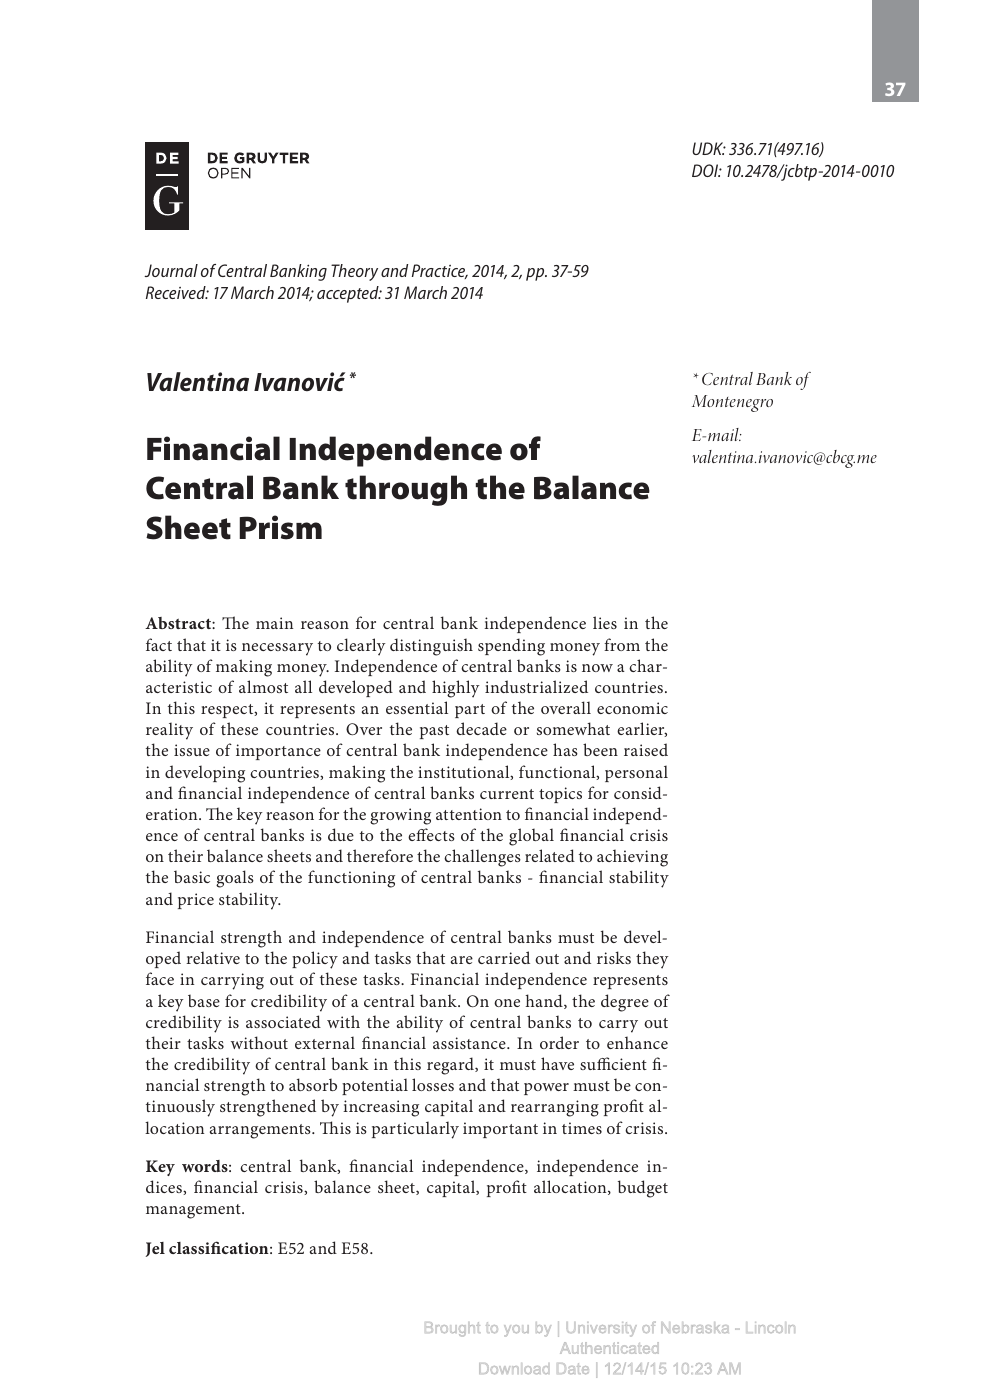 Financial Independence of Central Bank through the Balance